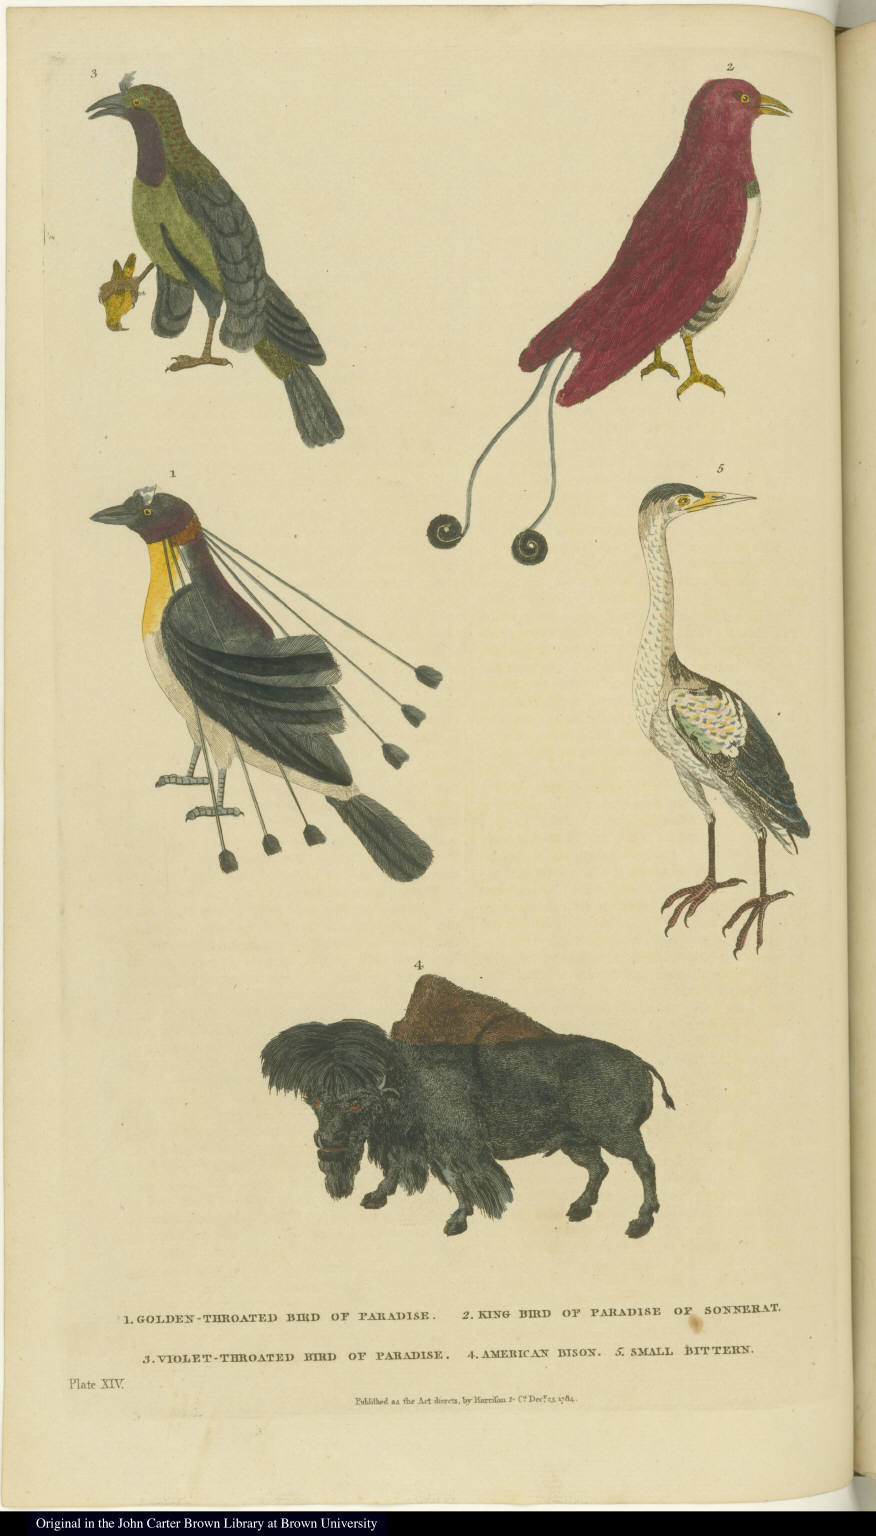 [Various birds and a bison]